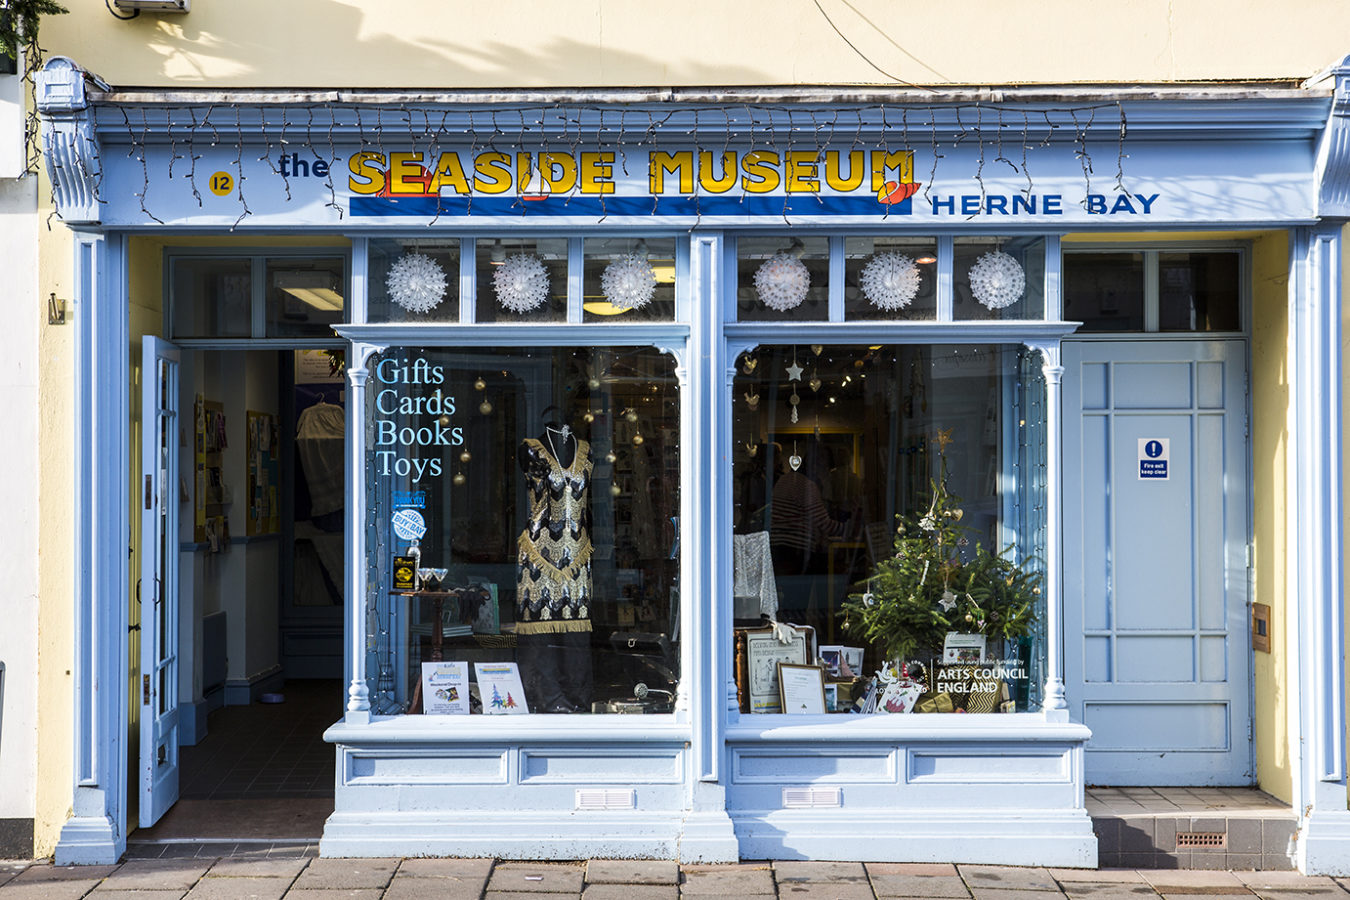 The front of the Seaside Museum in Herne Bay, painted in light blue.